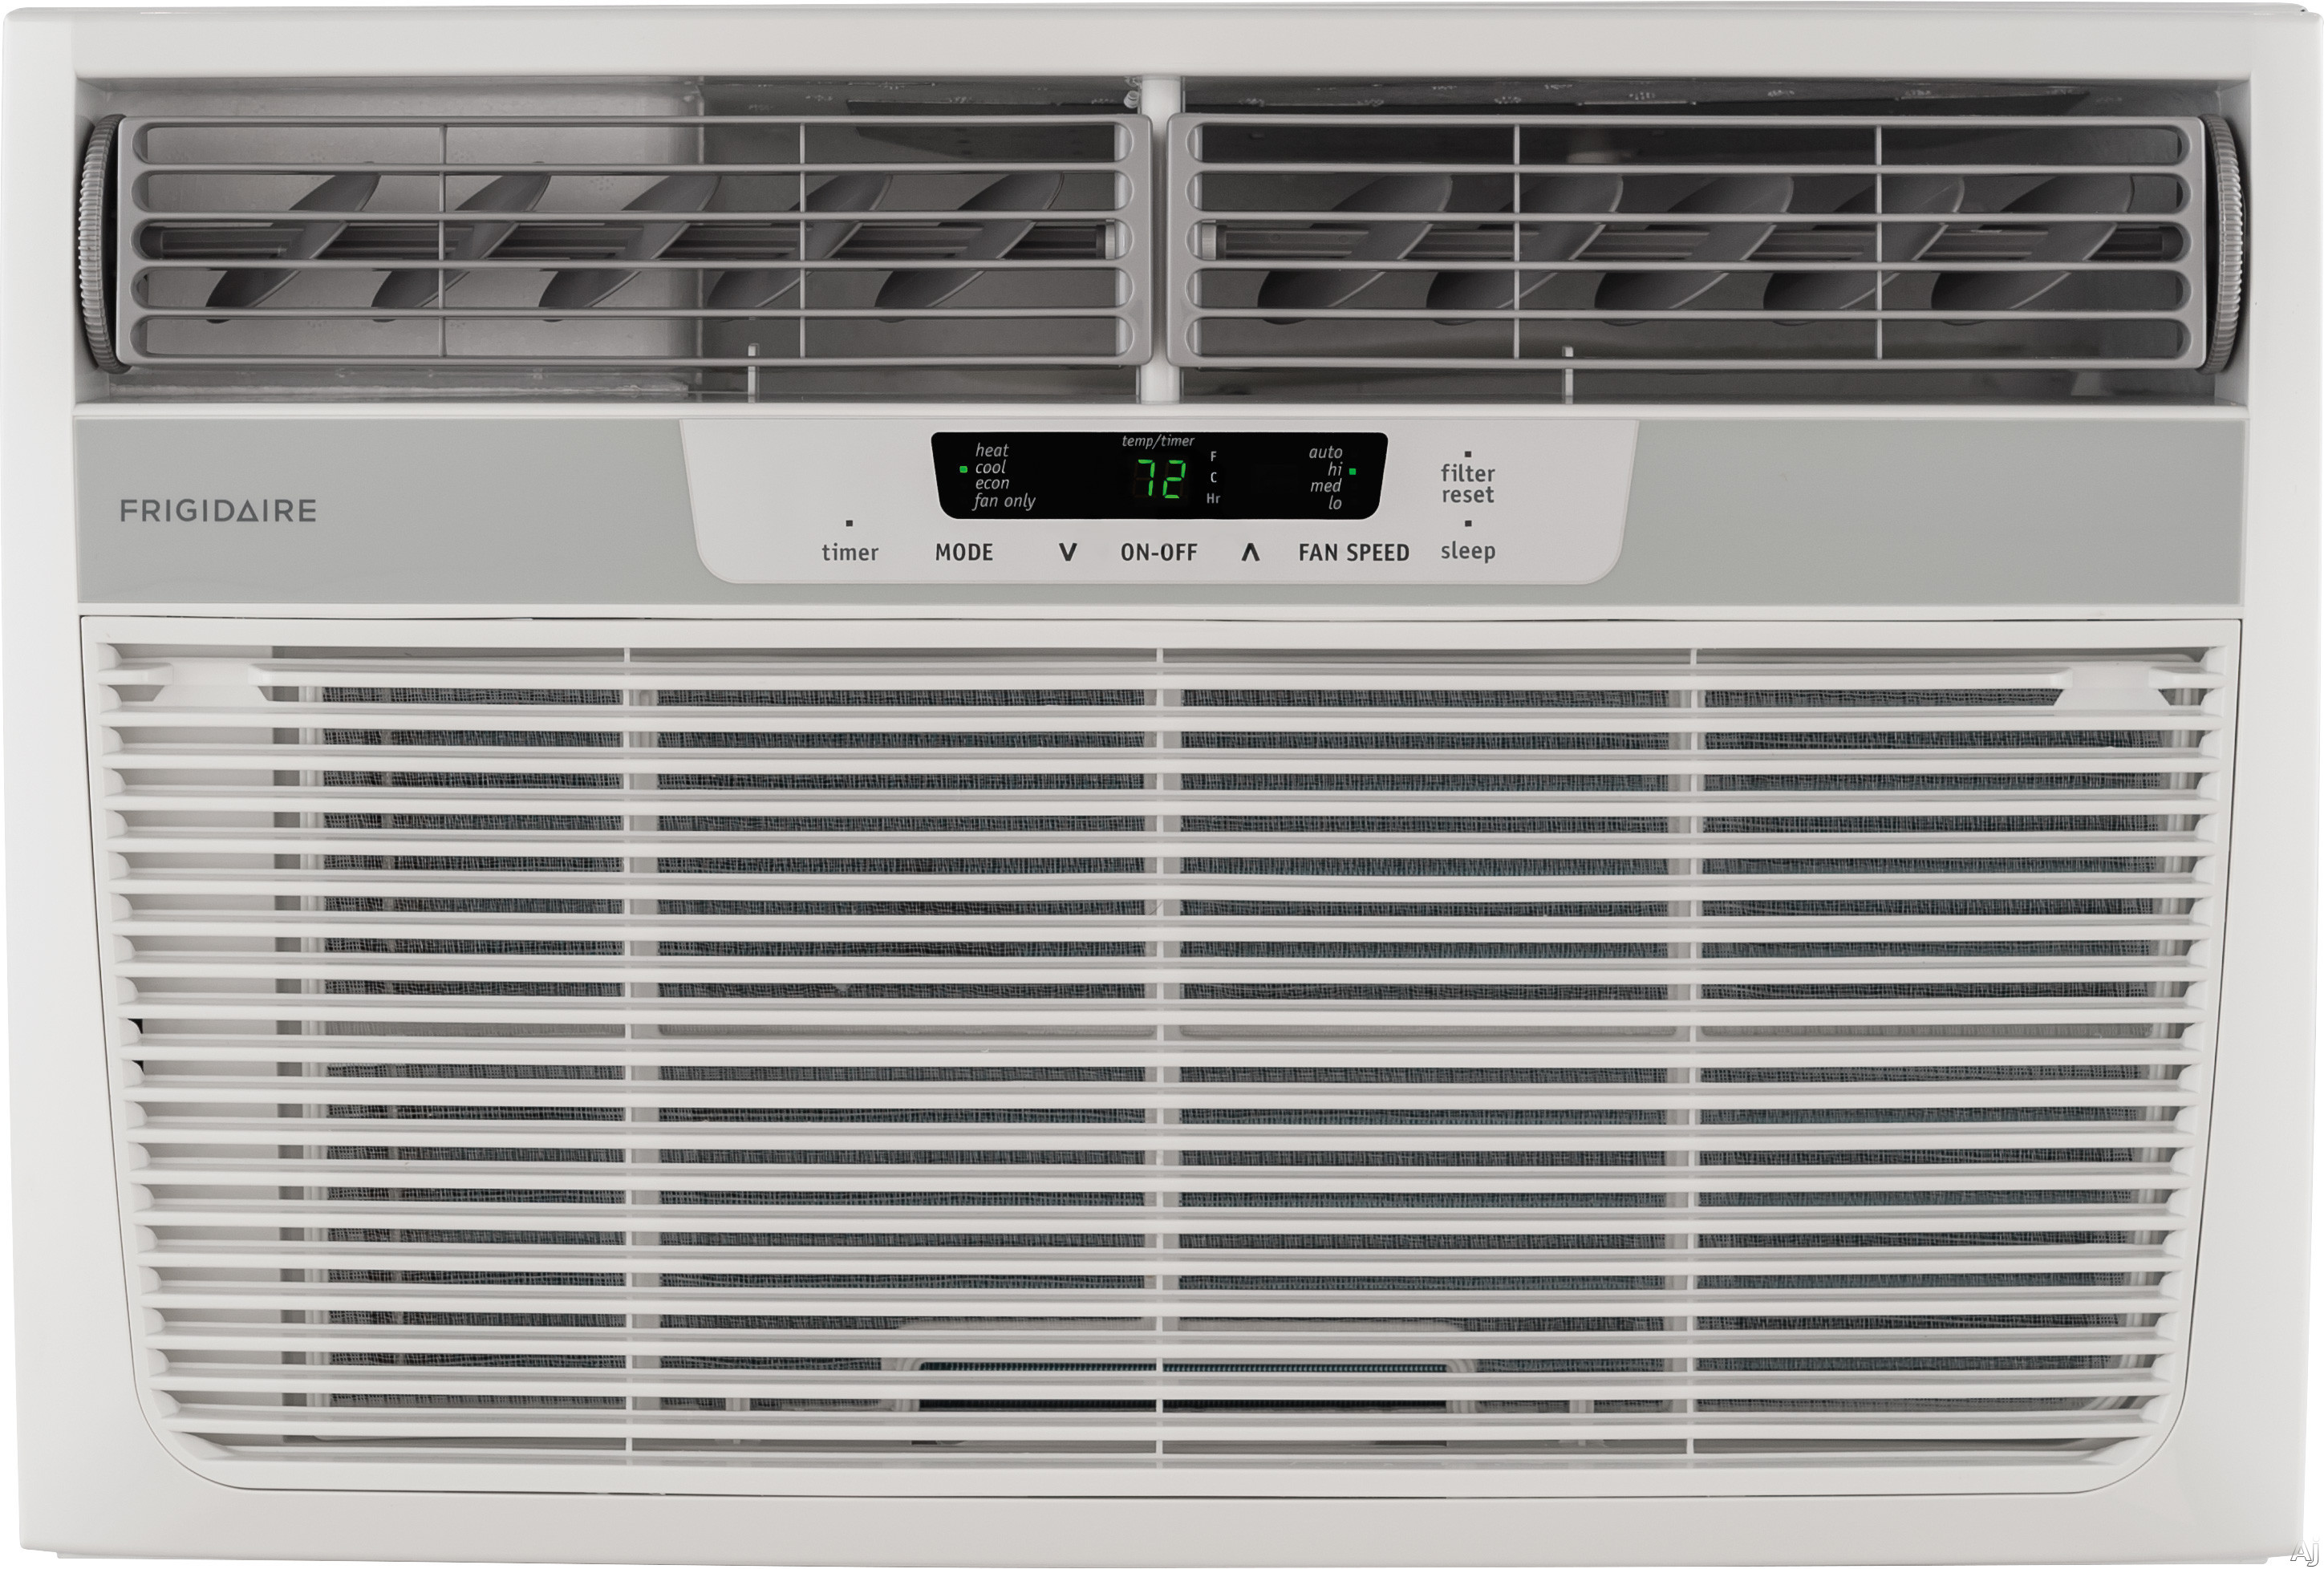 Frigidaire FFRH0822R1 8,000 BTU Room Air Conditioner with 7,000 BTU Heat Pump, 9.8 EER, R-410A Refrigerant, 1.5 Pts/Hr Dehumidification and Remote Control FFRH0822R1